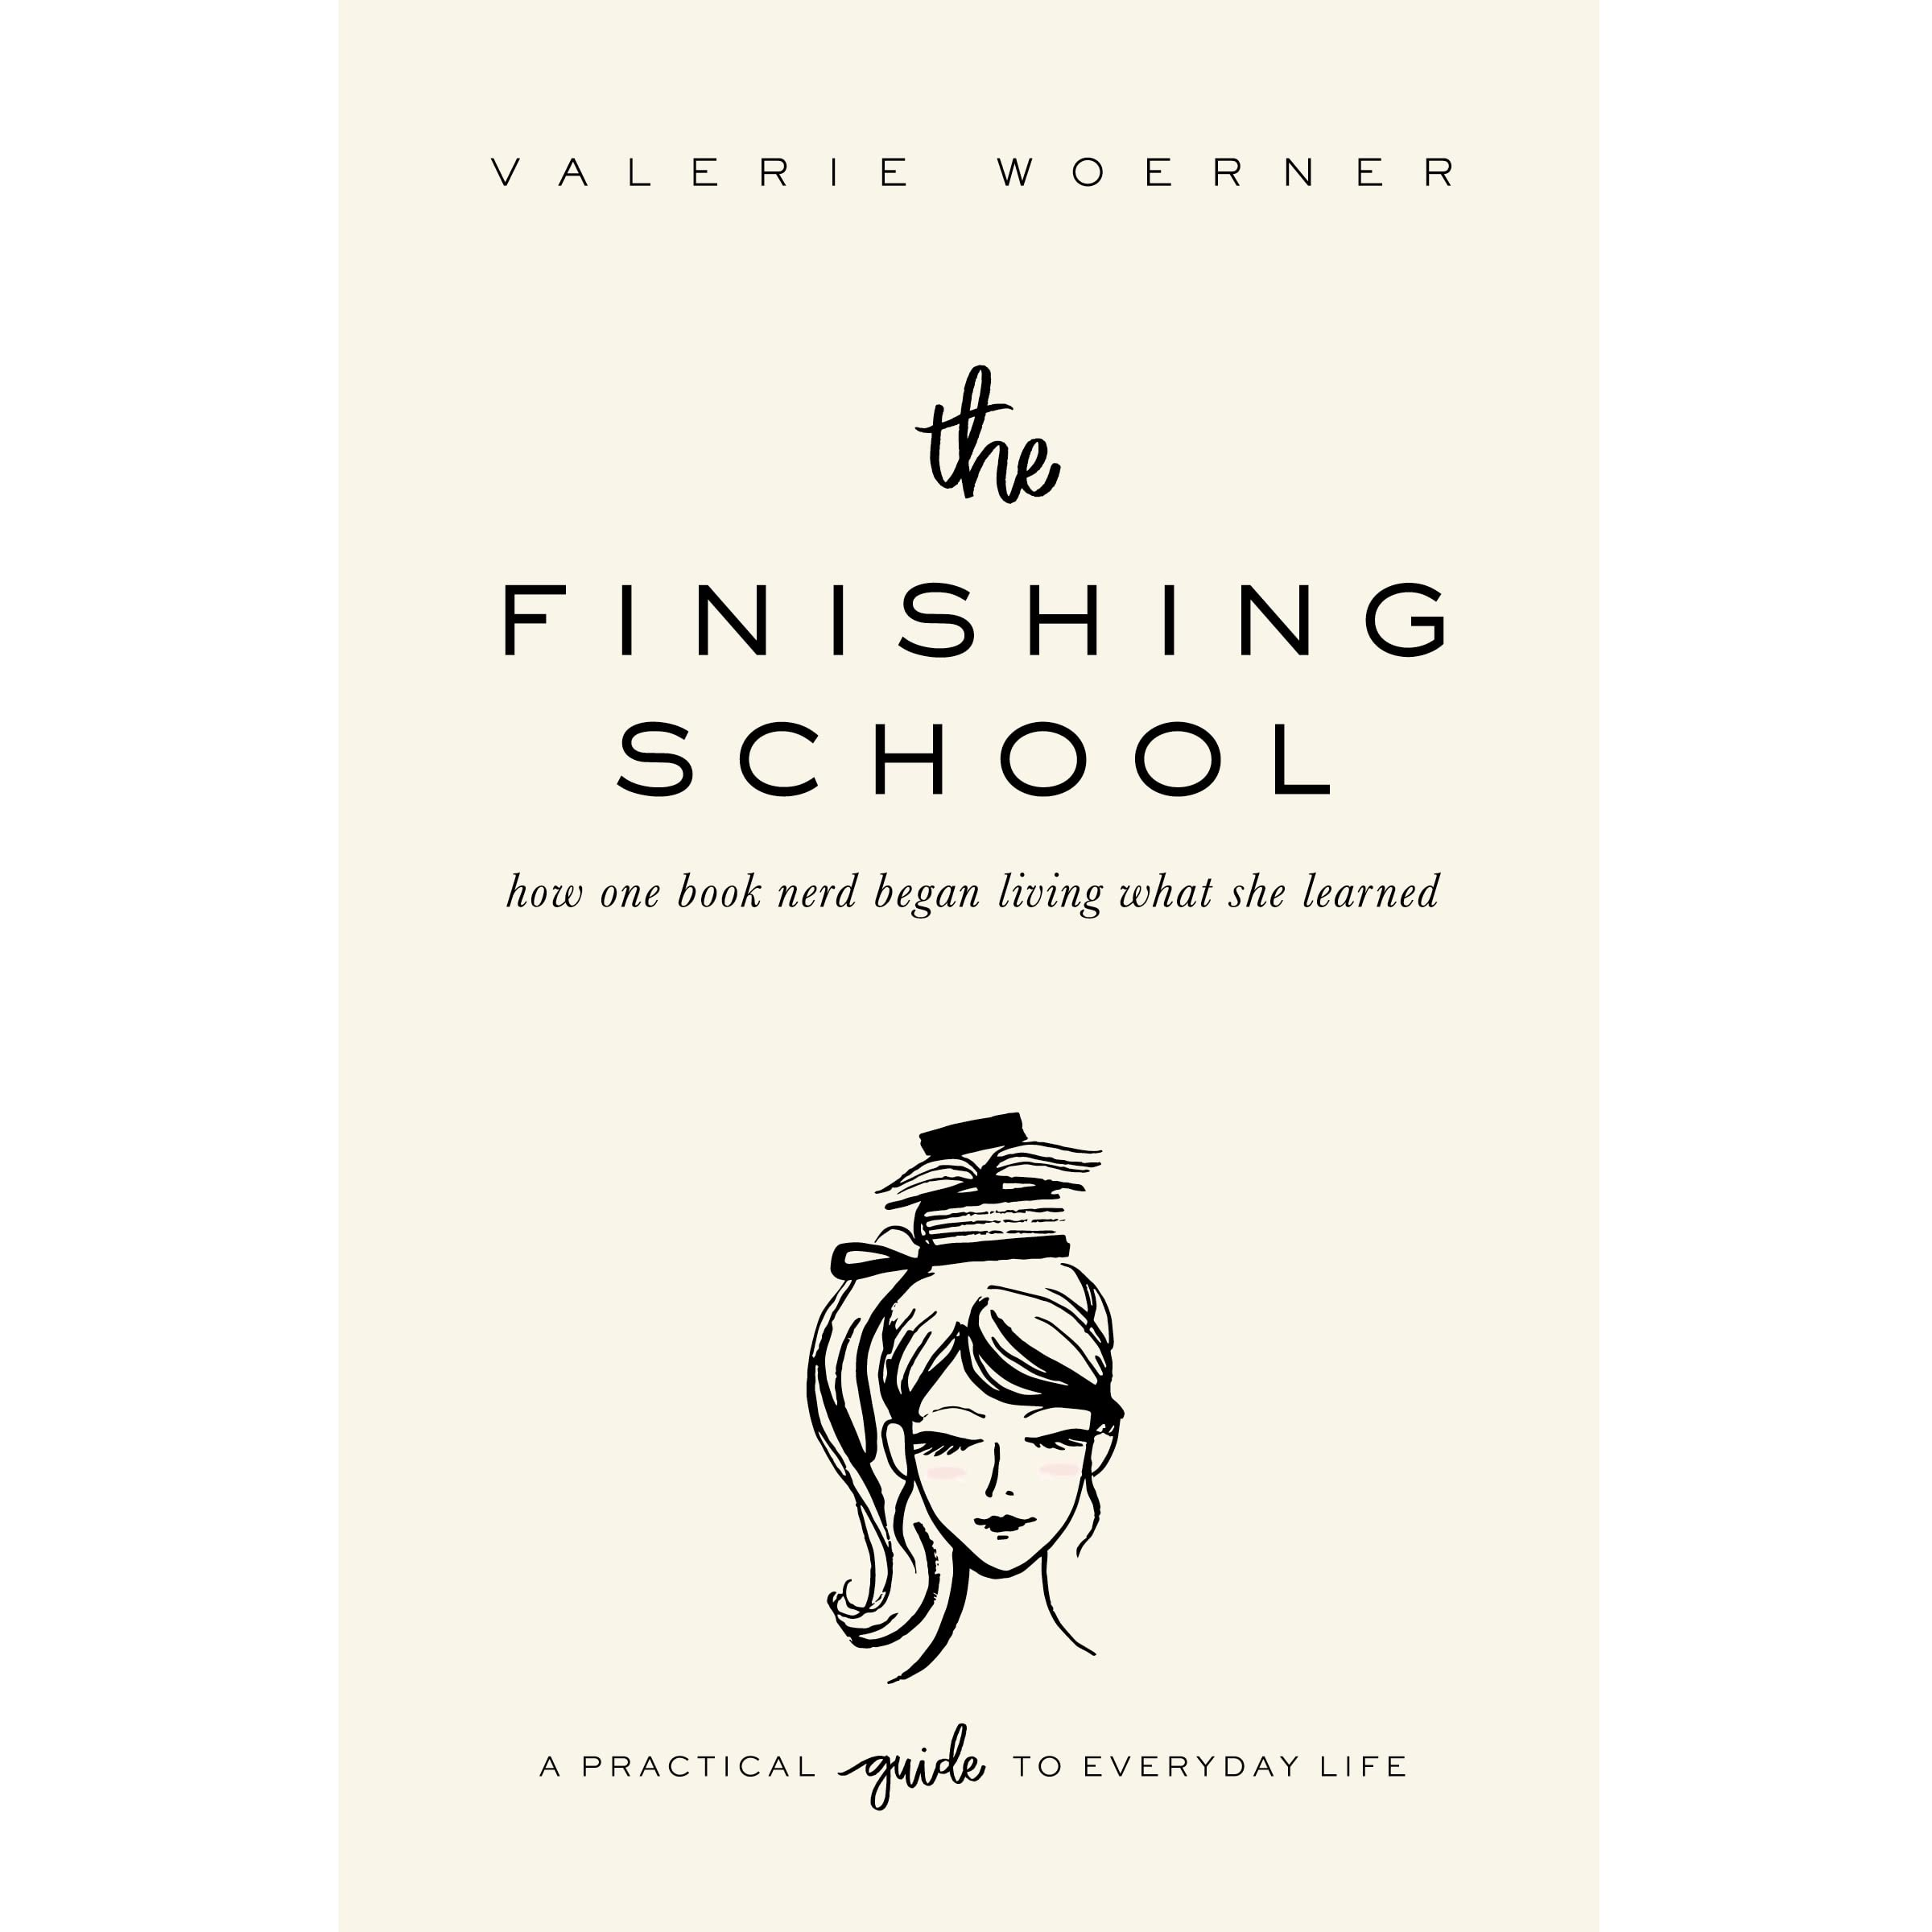 Image result for The Finishing School by Val Worner